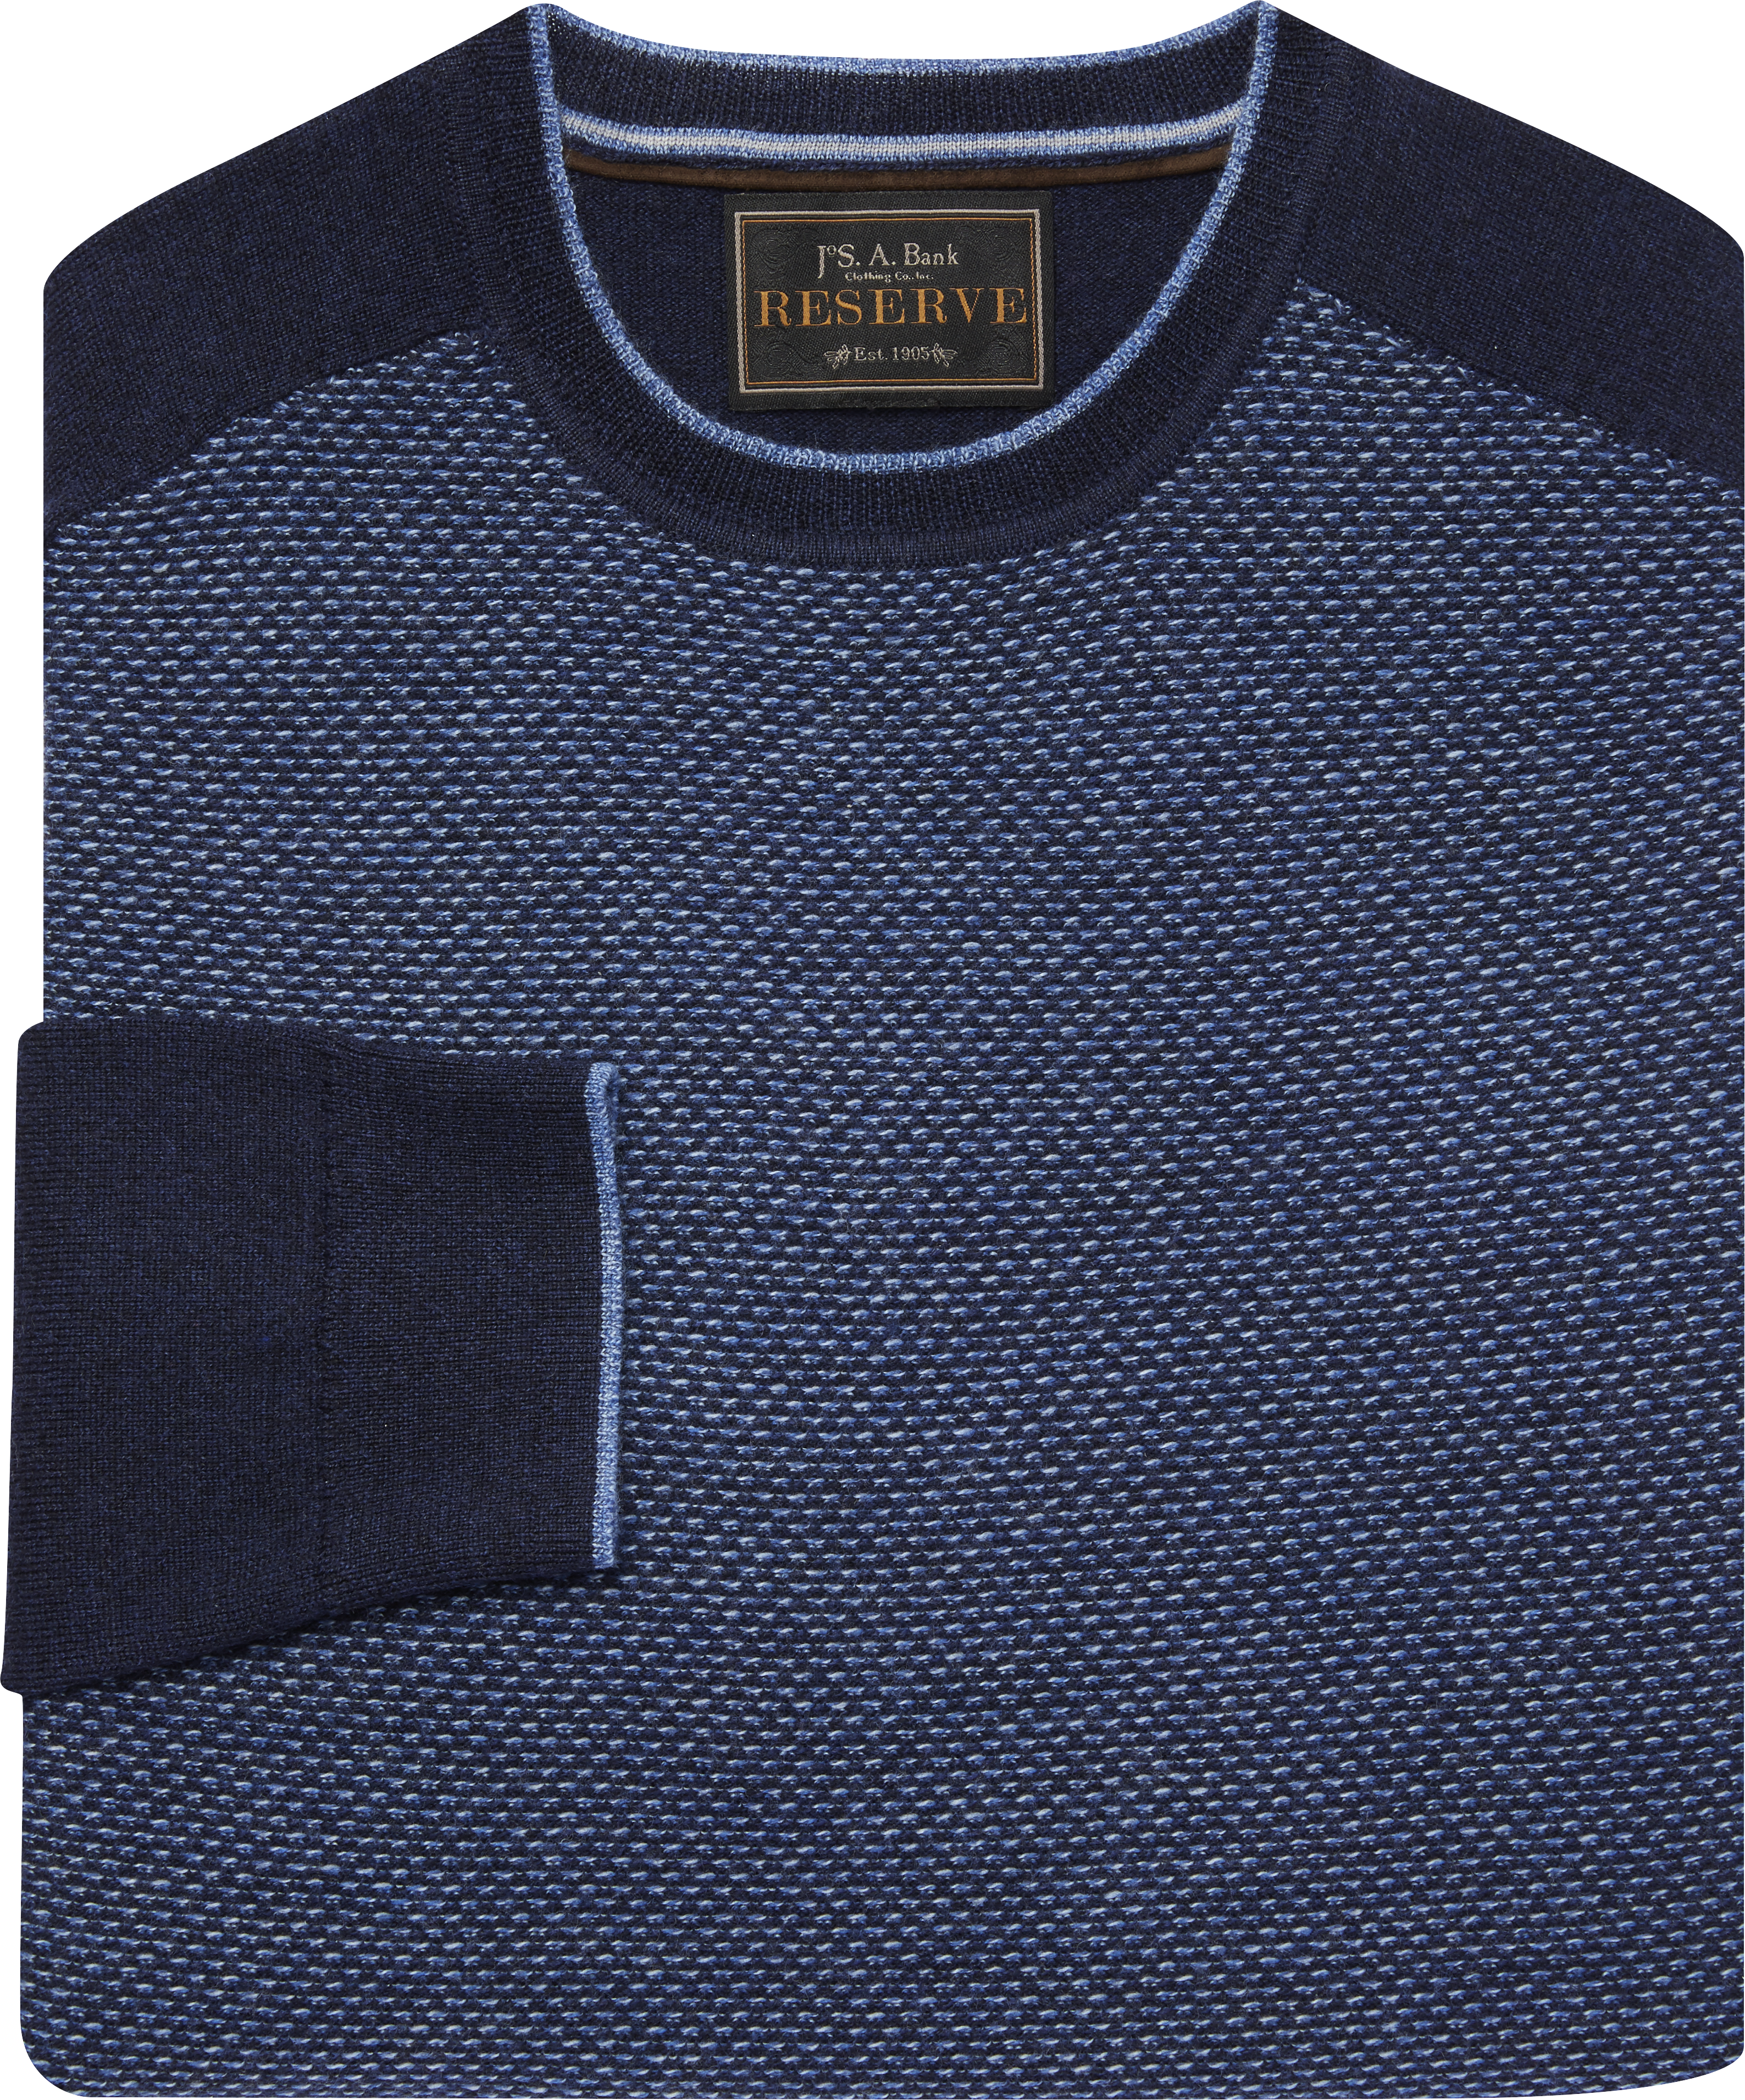 78837e5a7086 Reserve Collection Raglan Crew Neck Sweater CLEARANCE - All ...